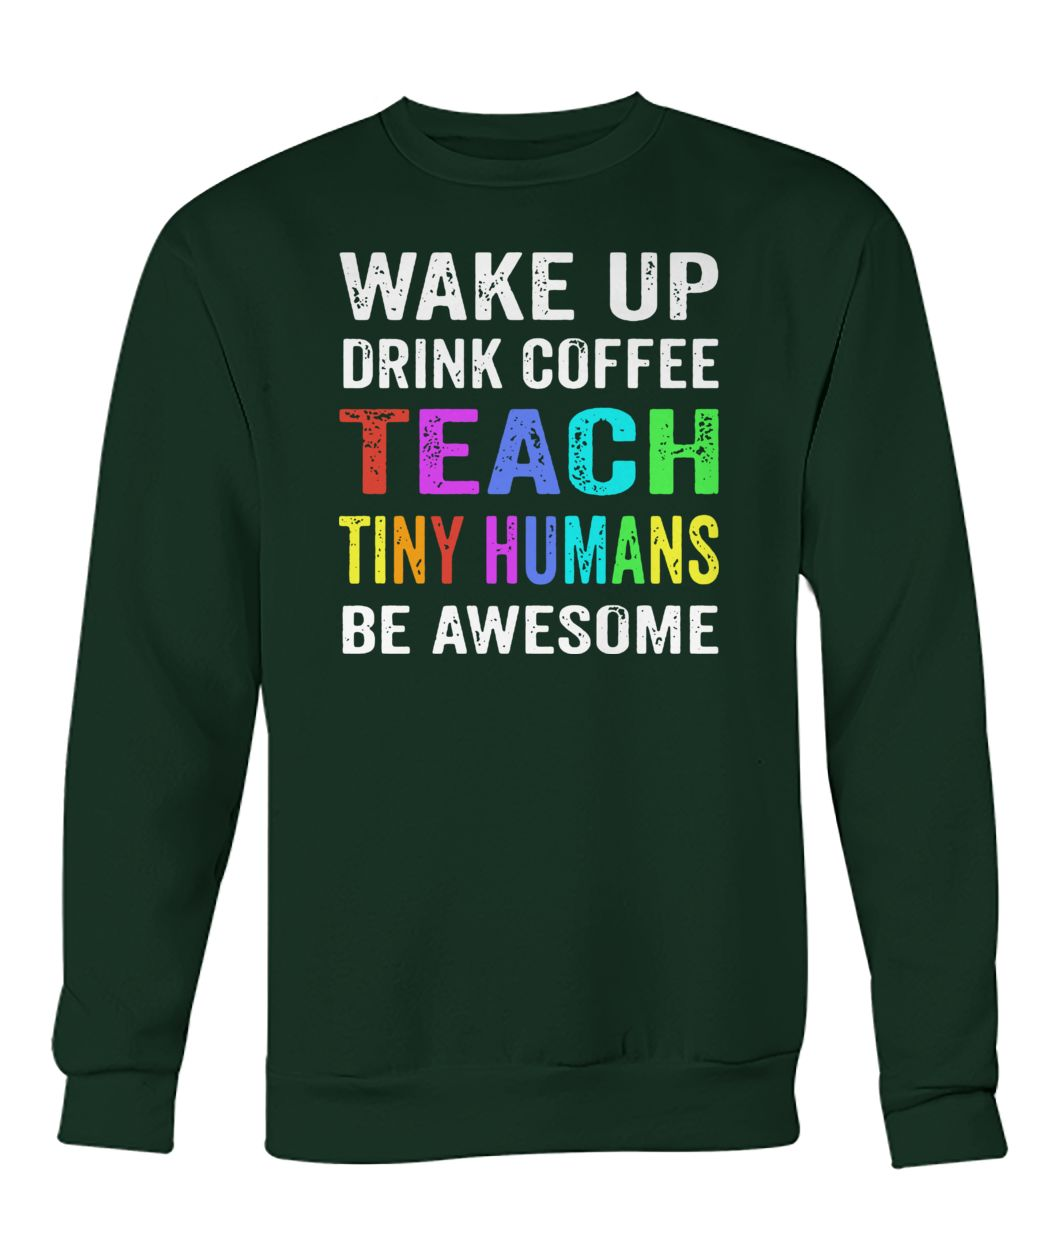 Wake up drink coffee teach tiny humans be awesome crew neck sweatshirt